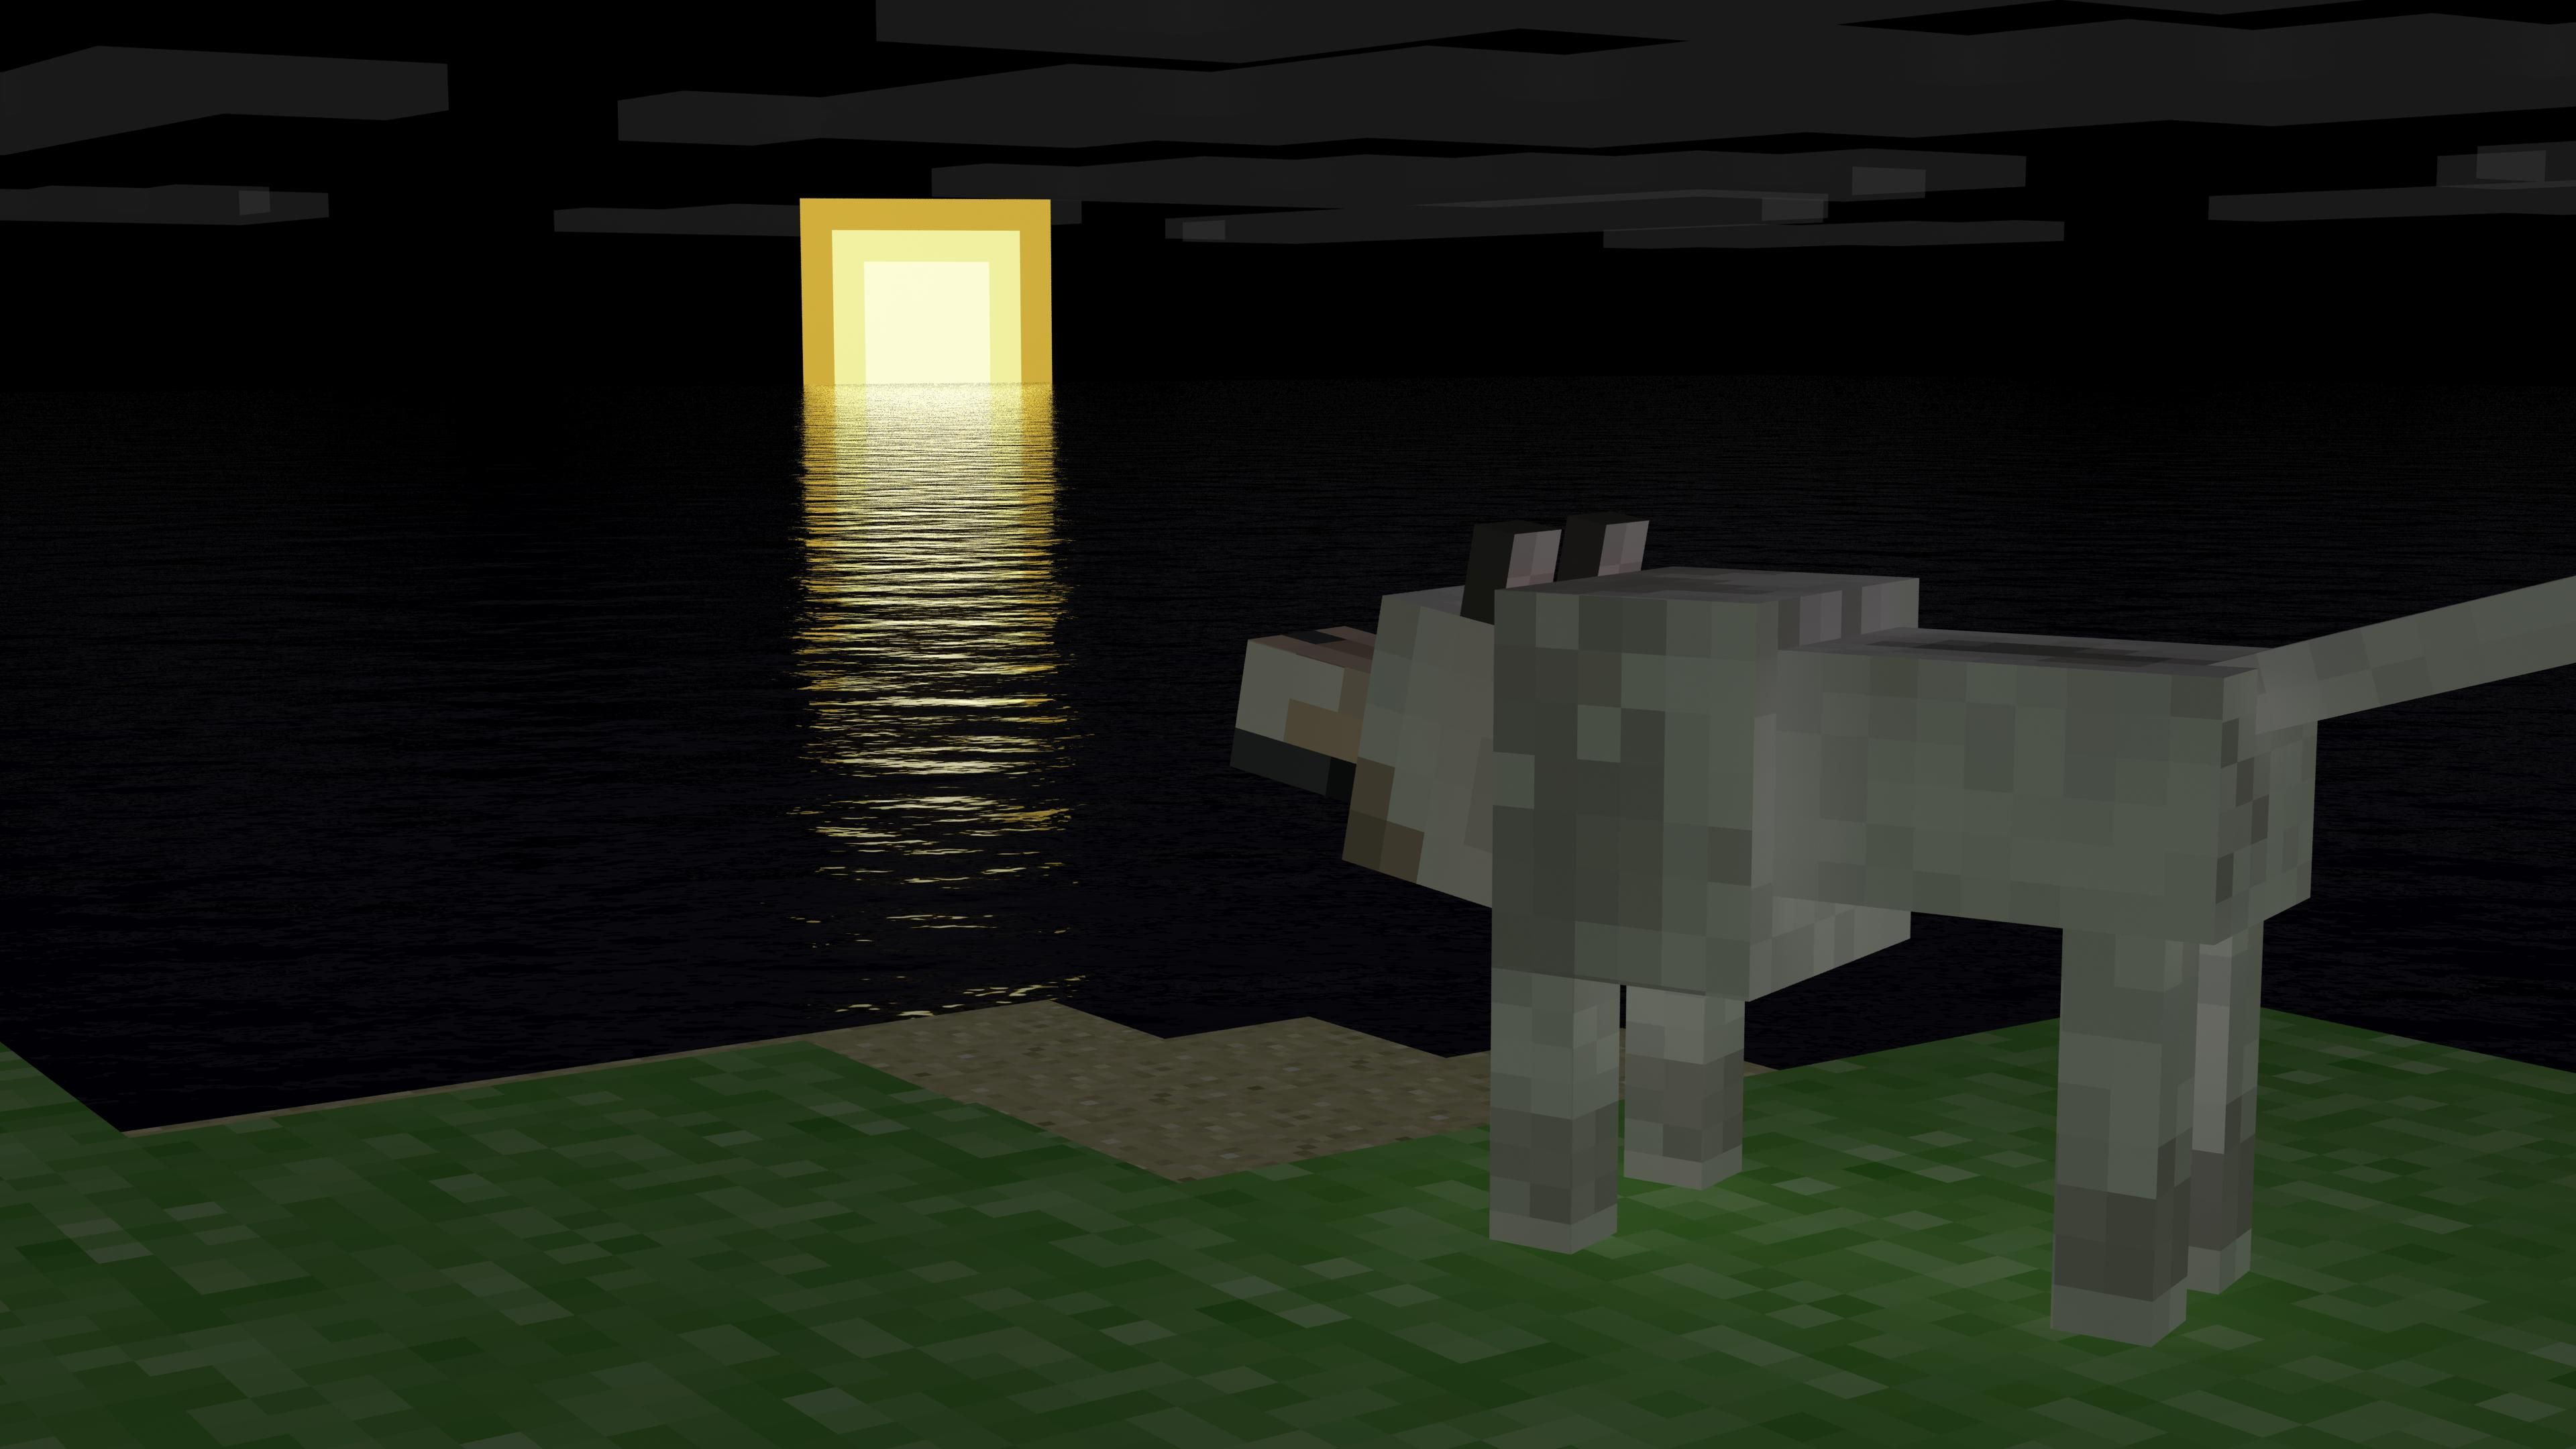 3840x2160 Minecraft Wolf Wallpapers